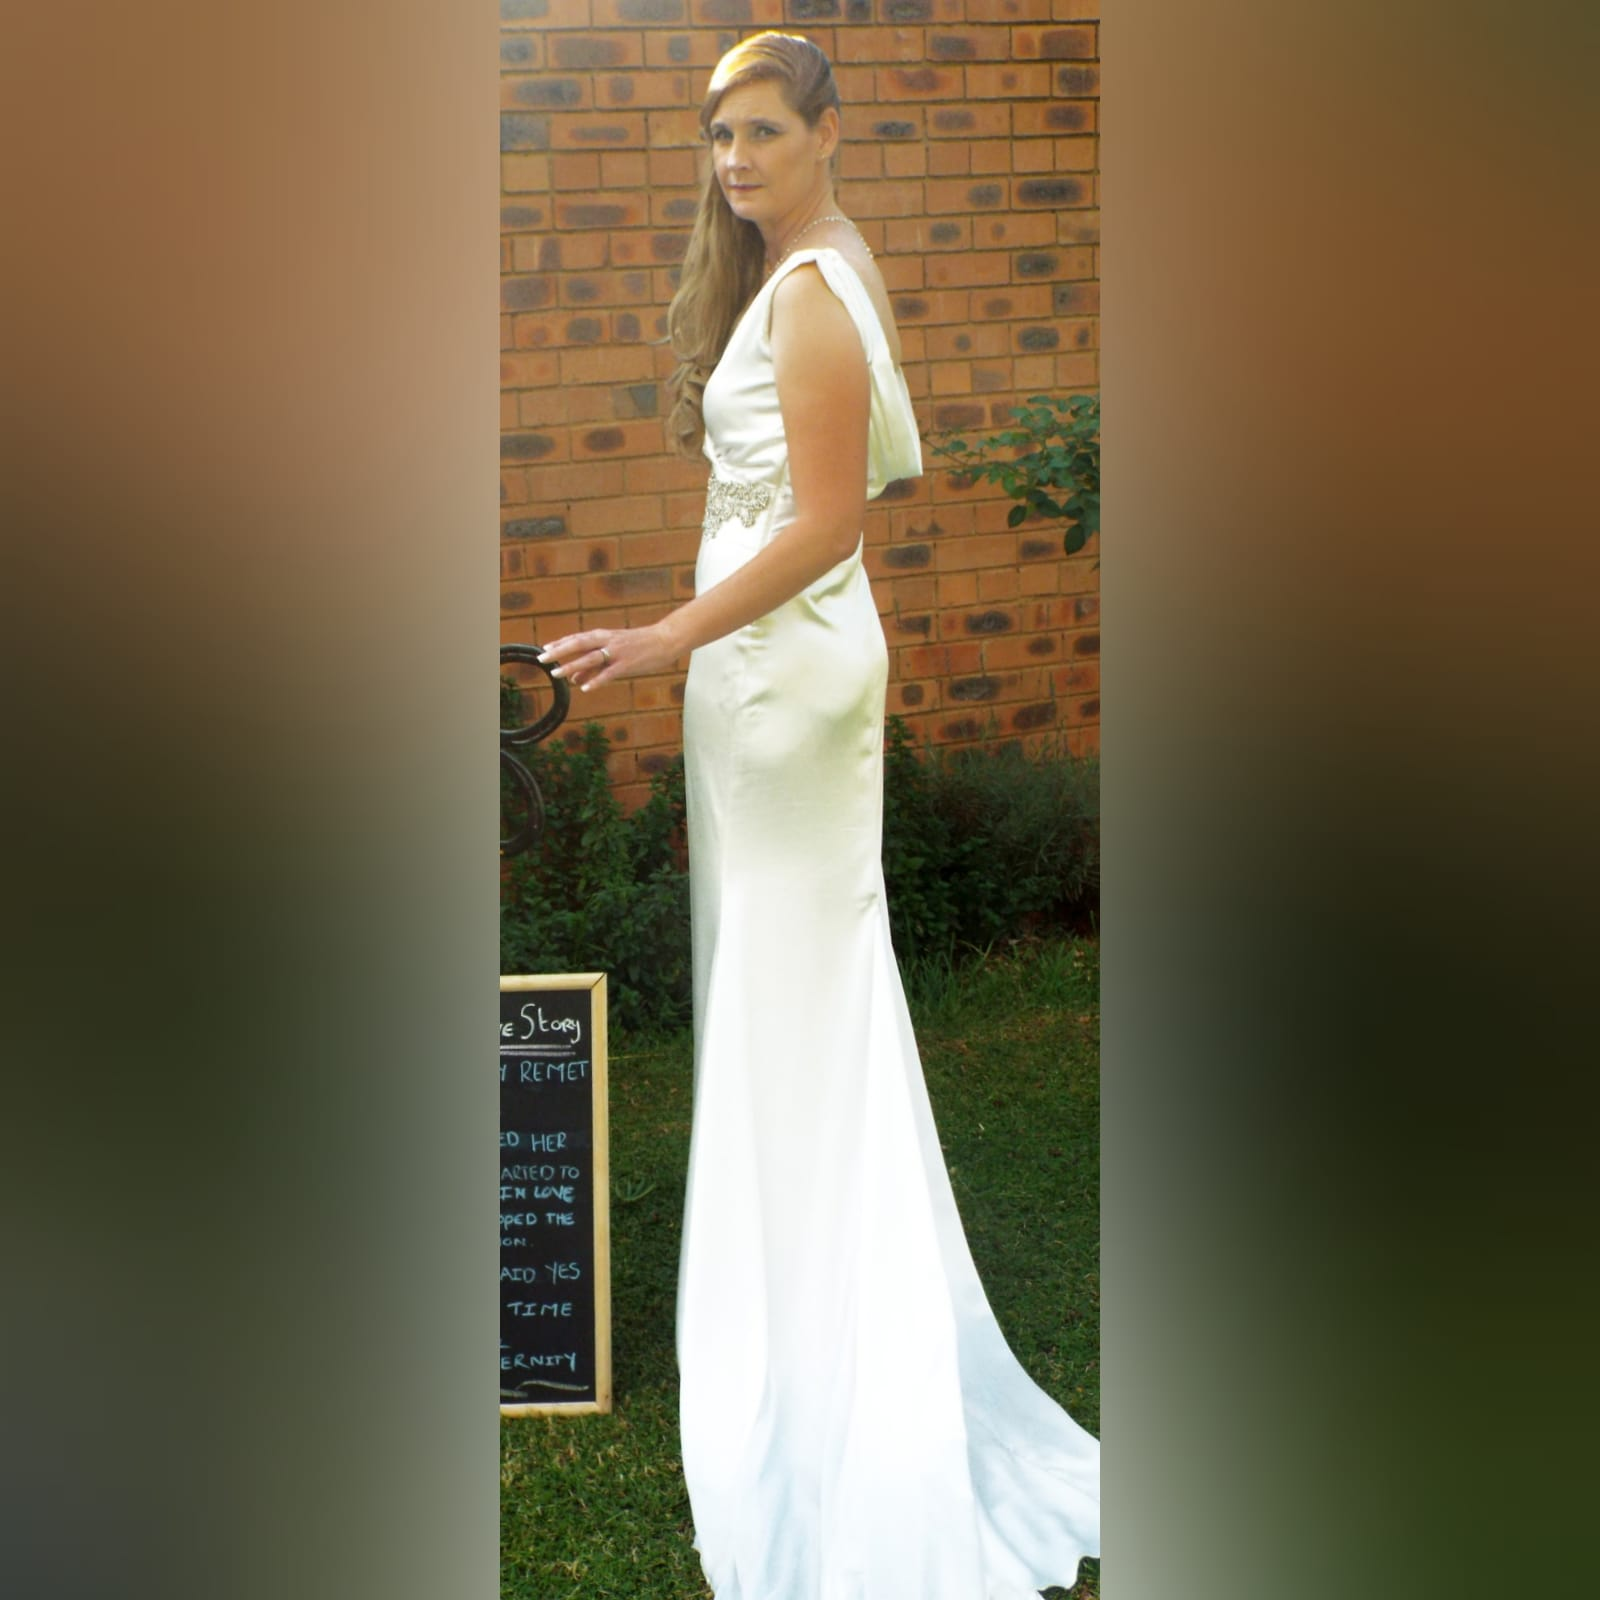 White satin soft mermaid wedding dress with silver belt detail 1 white satin soft mermaid wedding dress, cross busted neckline, open cowl neck back. Angled belt with diamante detail. Train with train hookup.